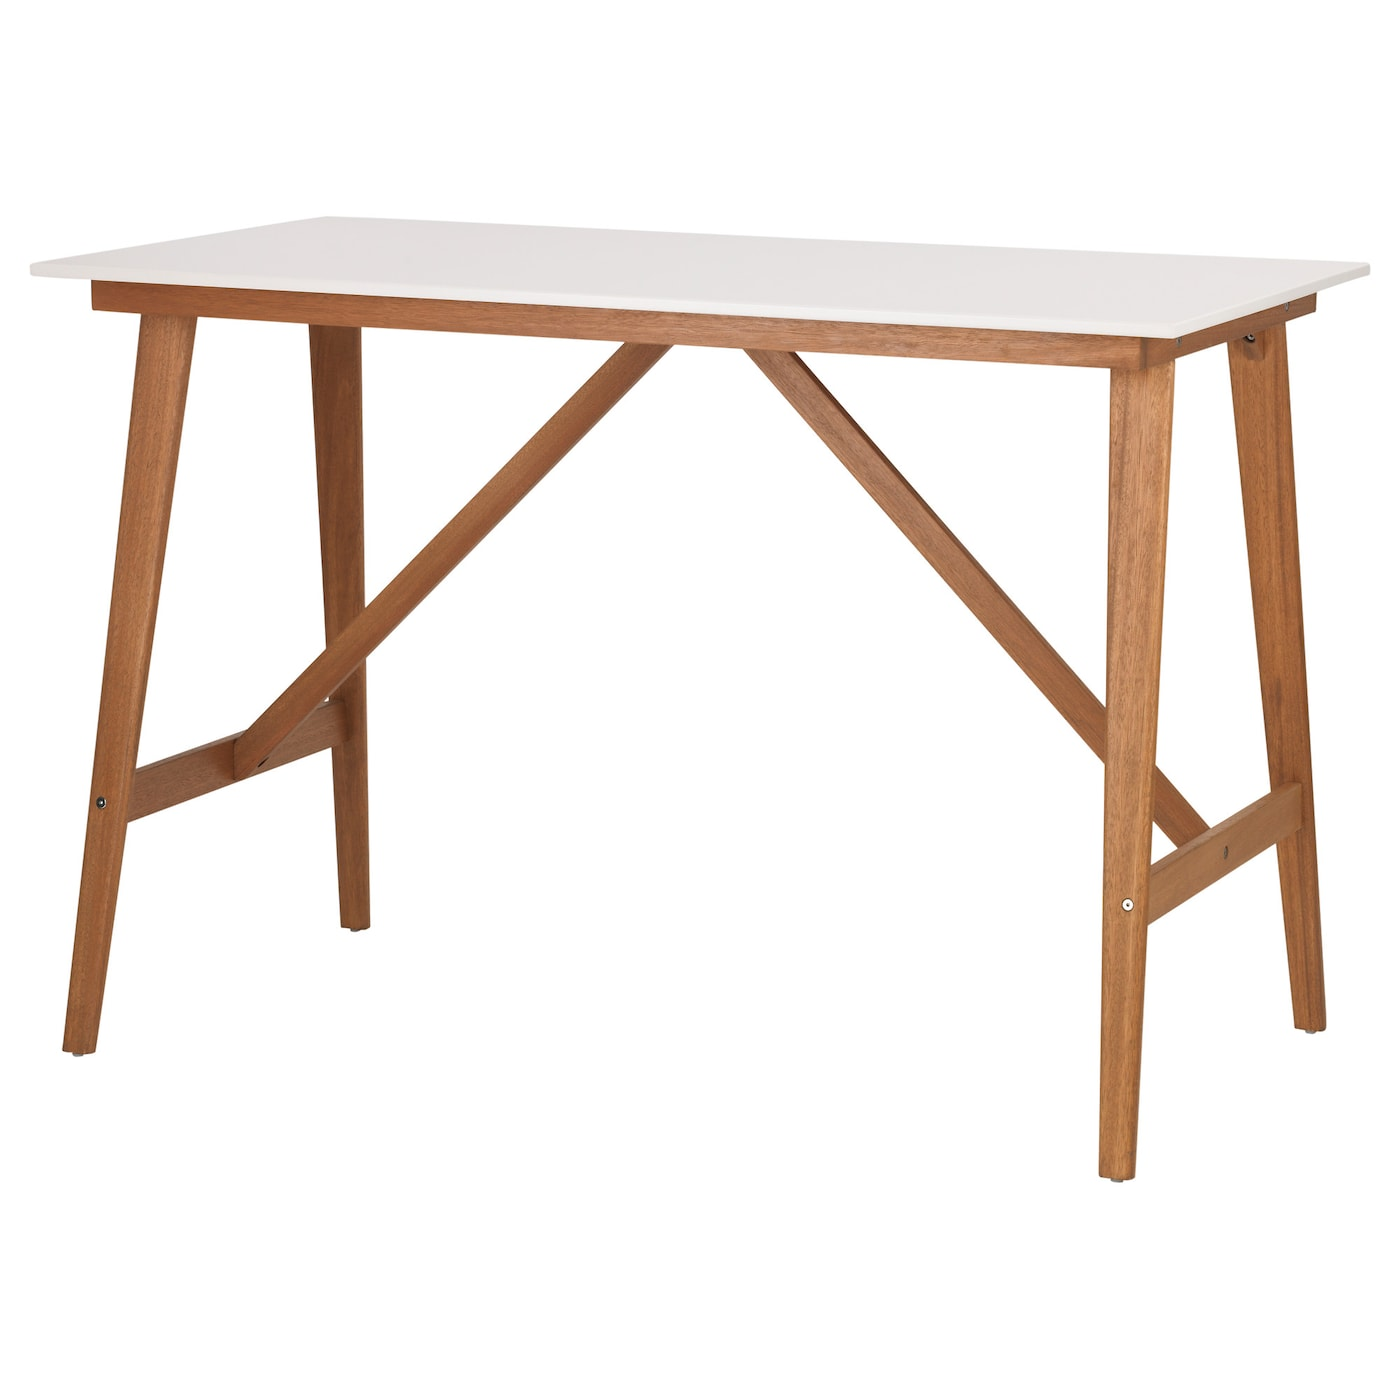 Fanbyn bar table white 140x78x95 cm ikea for Conforama table pliable